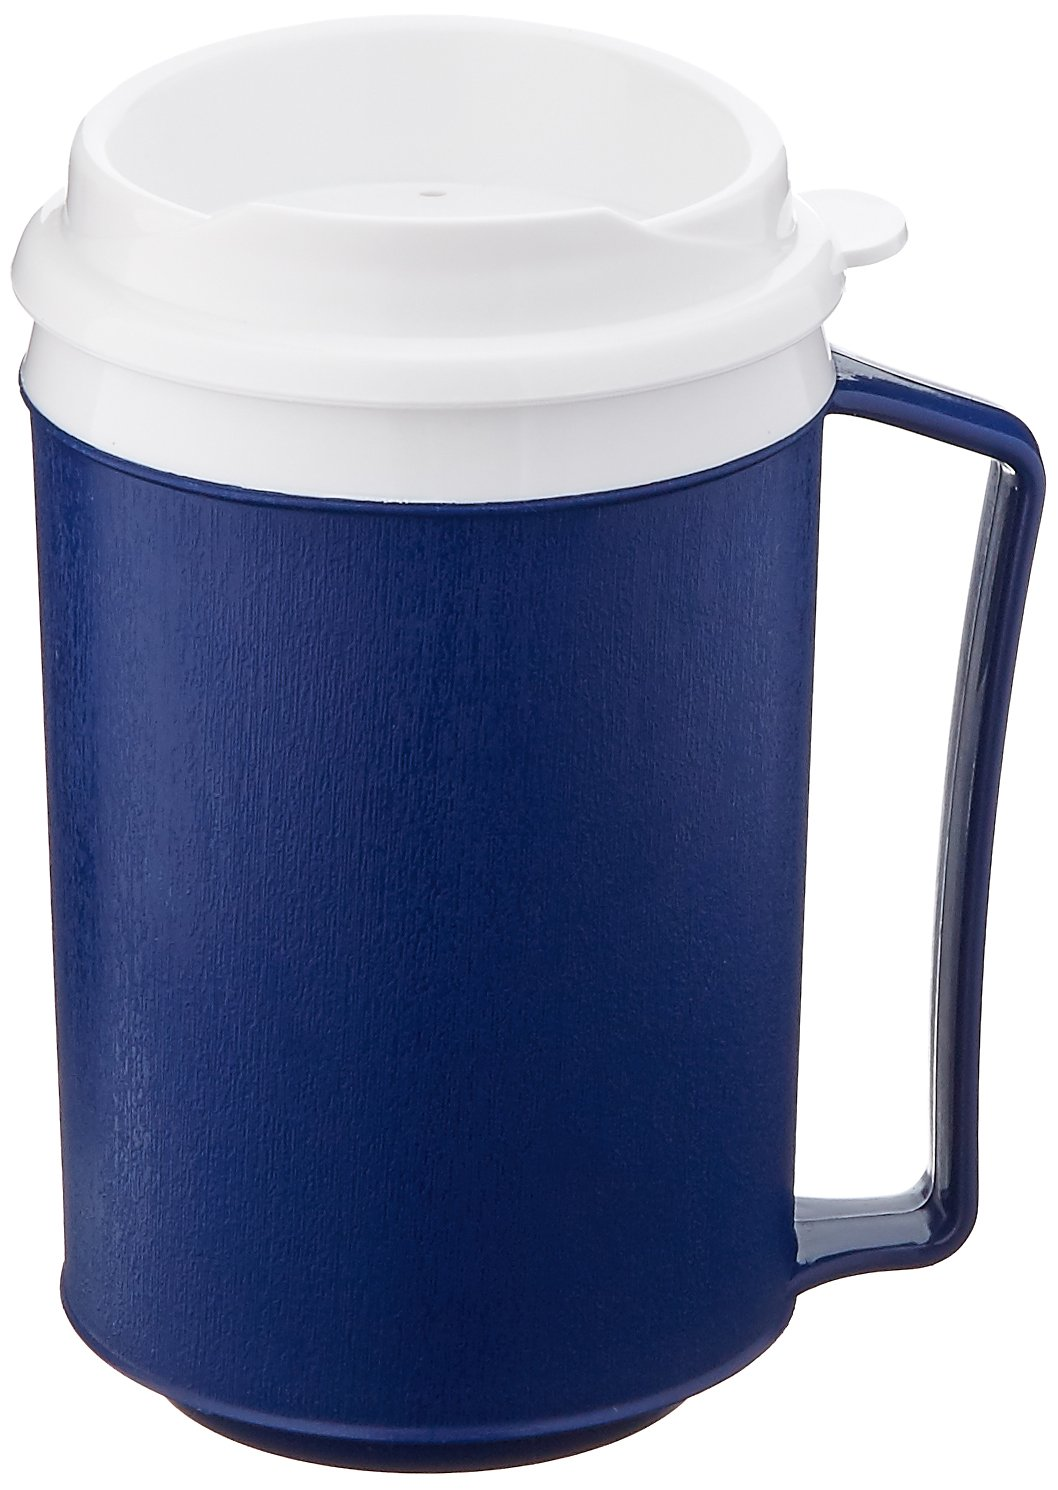 Sammons Preston Insulated Mug with Tumbler Lid, Durable Container for Hot and Cold Liquid Beverages, Tea, Smoothies, 12 oz Blue Travel Coffee Cup with Lid for Elderly, Disabled, Handicapped, Weak Grip